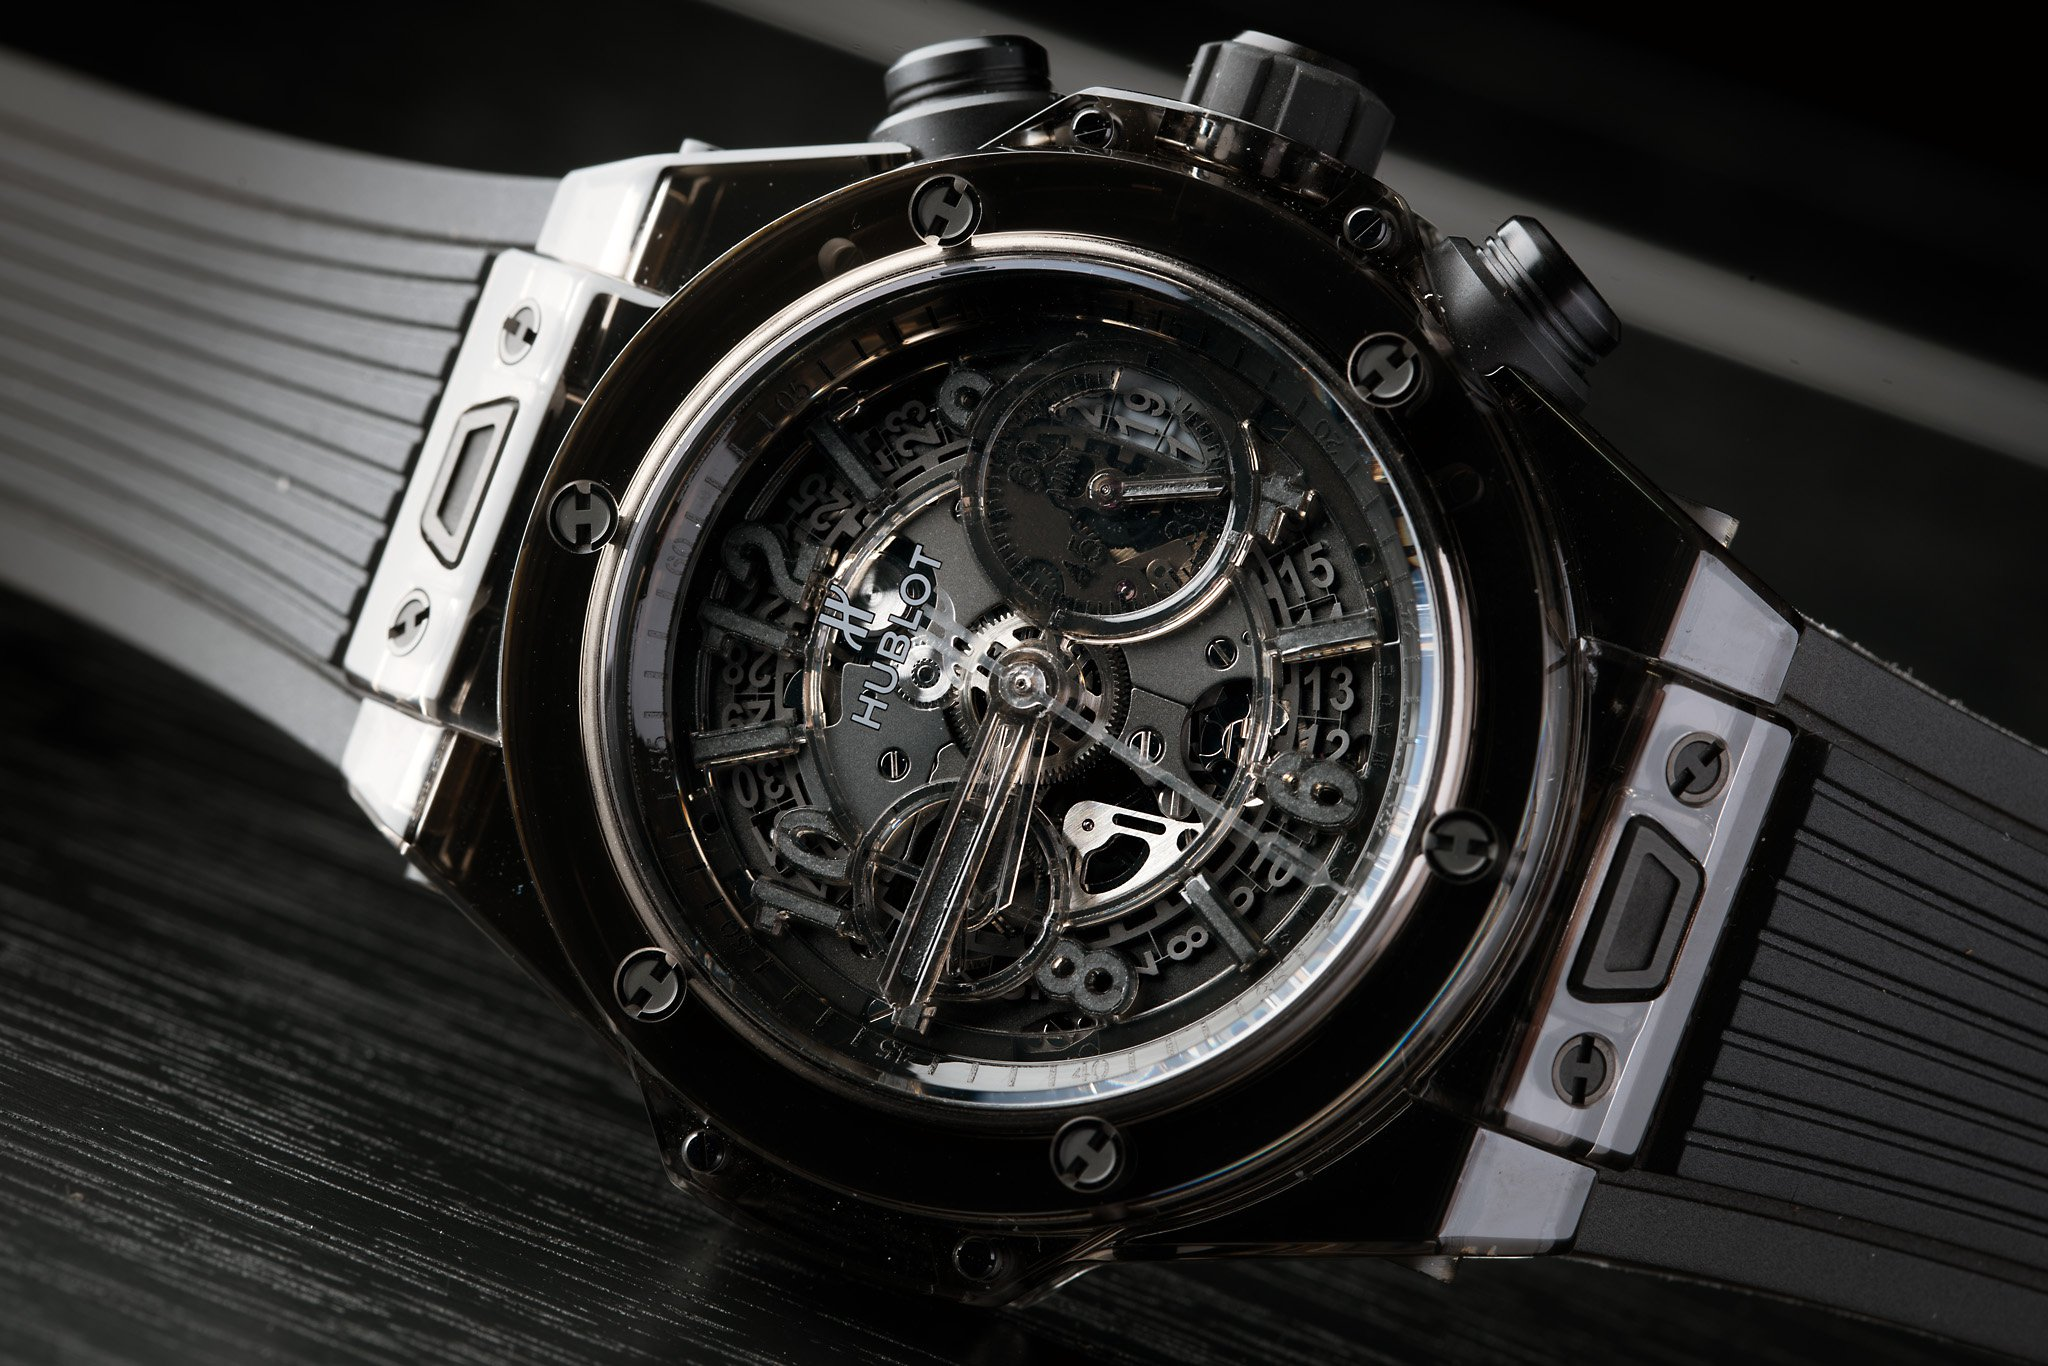 Presenting The Tagheuer,Hublot,Cartier,Audemars PIGUET Replica Watch